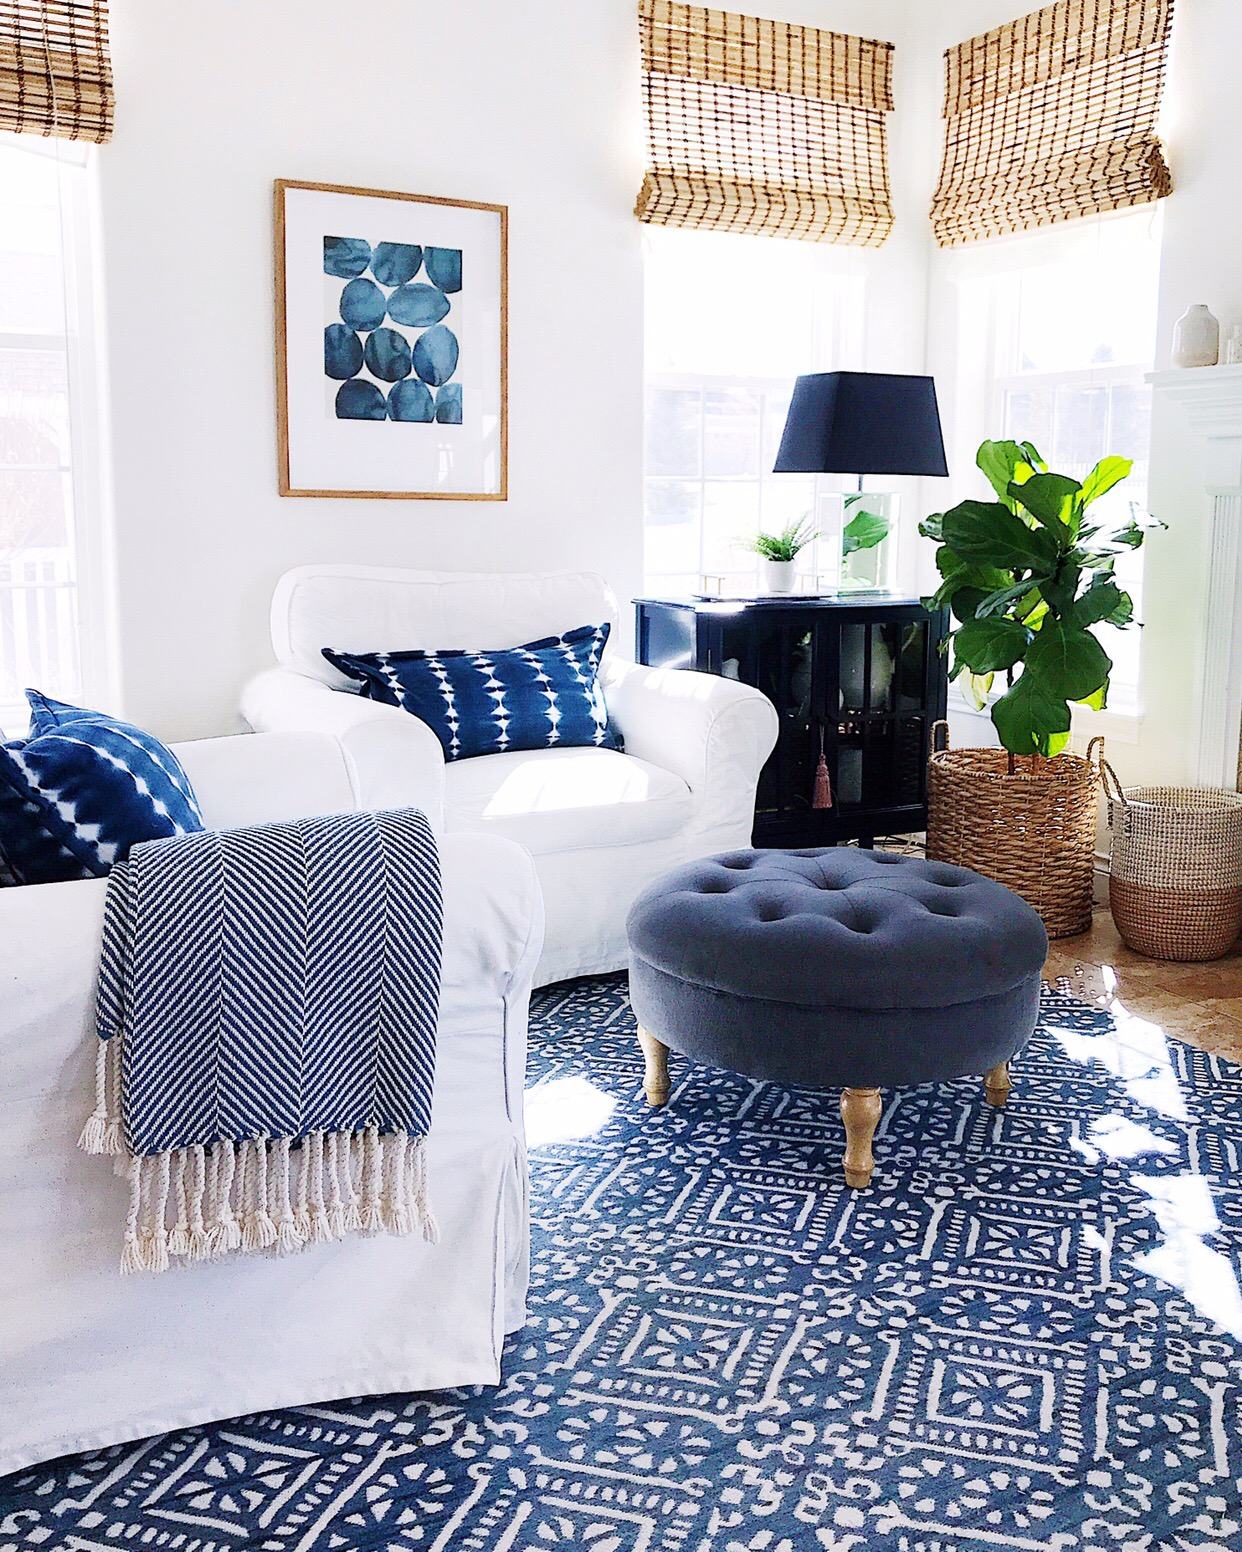 How To Choose A Design Style That Feels Right For You Jane At Home